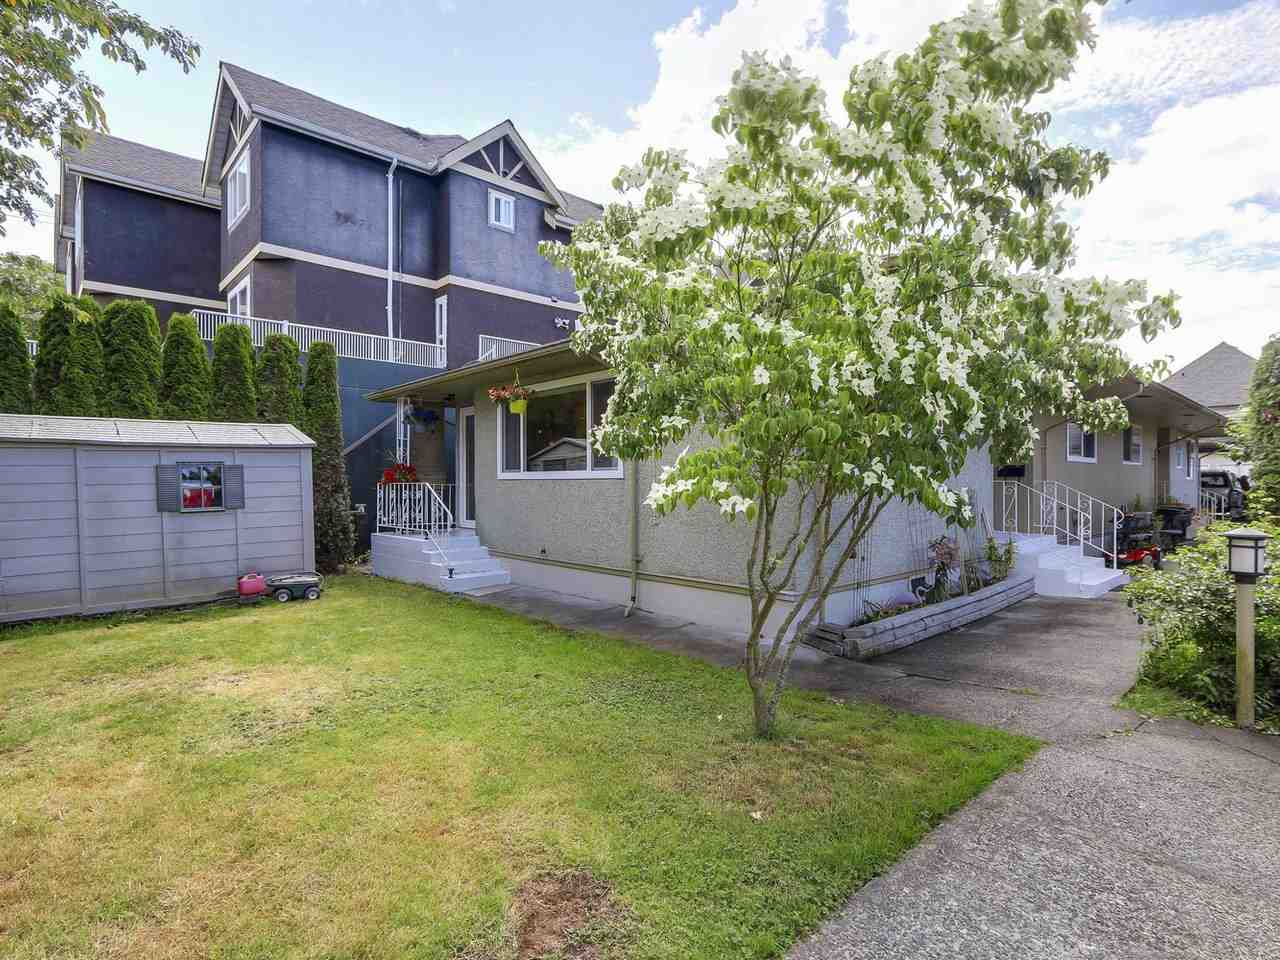 Photo 2: C 5068 47A Avenue in Delta: Ladner Elementary House 1/2 Duplex for sale (Ladner)  : MLS(r) # R2179730